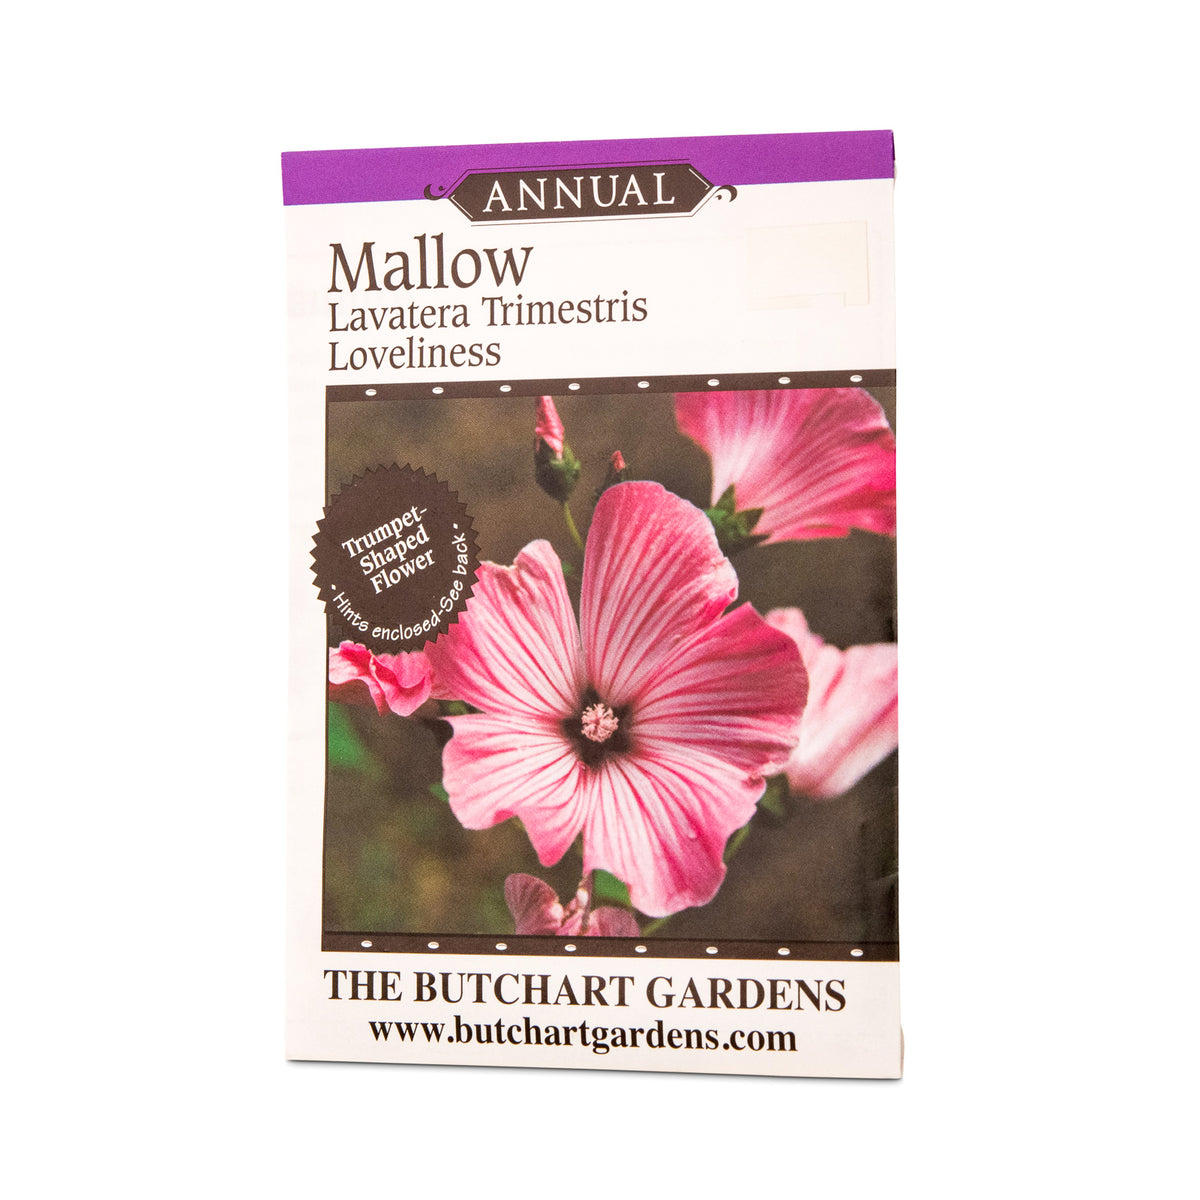 Seed mallow the butchart gardens seed gift store annual rosy pink trupet shaped flowers a hardy annual flowering from july to september care plant in full sun but keep sheltered from cold winds izmirmasajfo